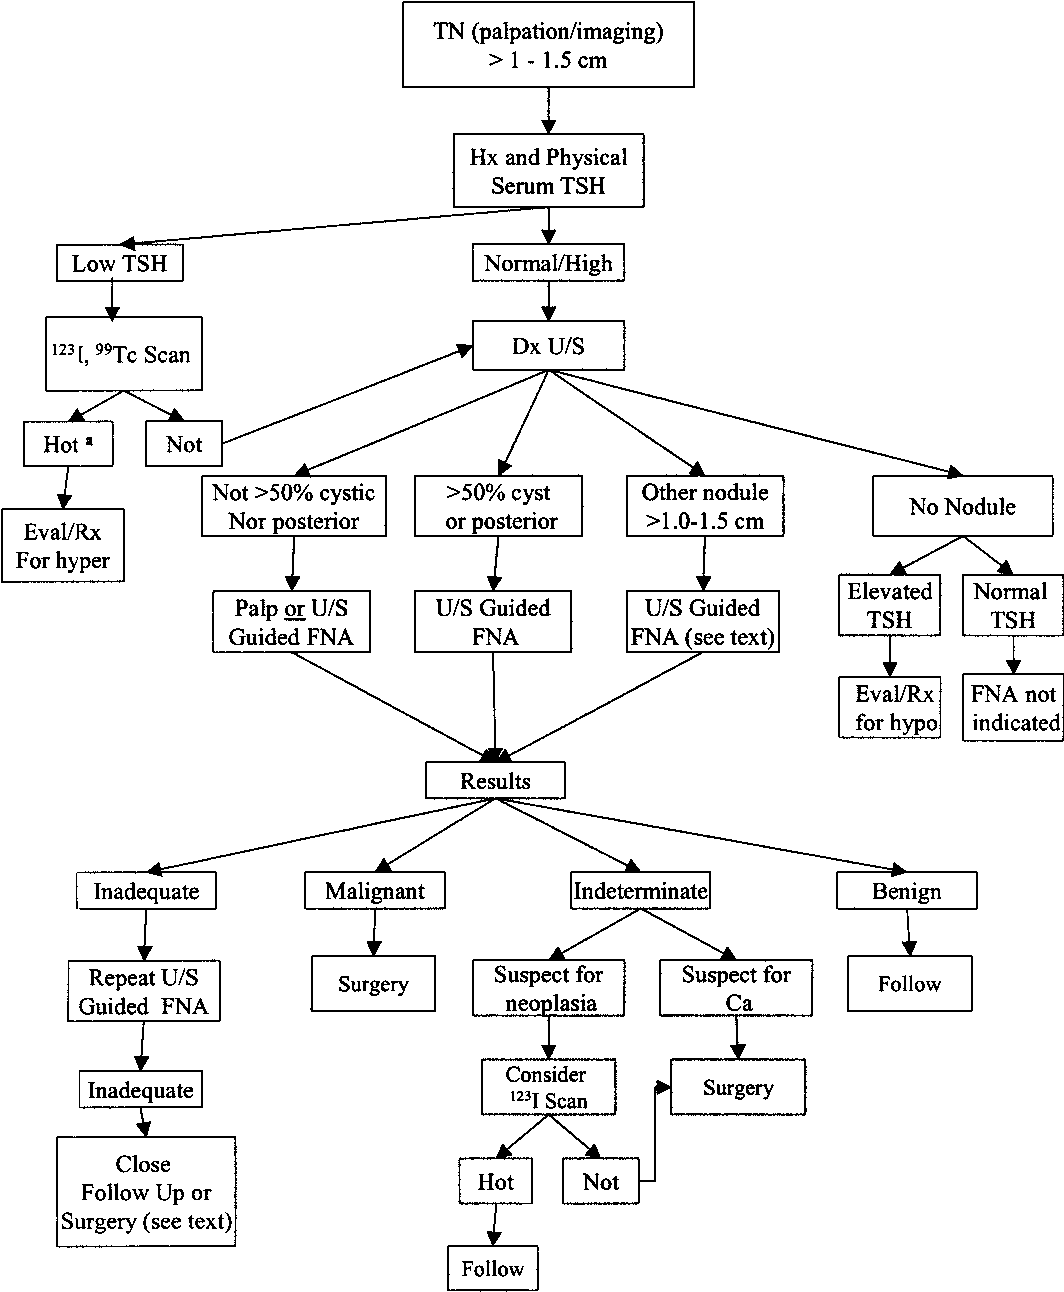 algorithm for the evaluation of patients with one or more thyroid nodules